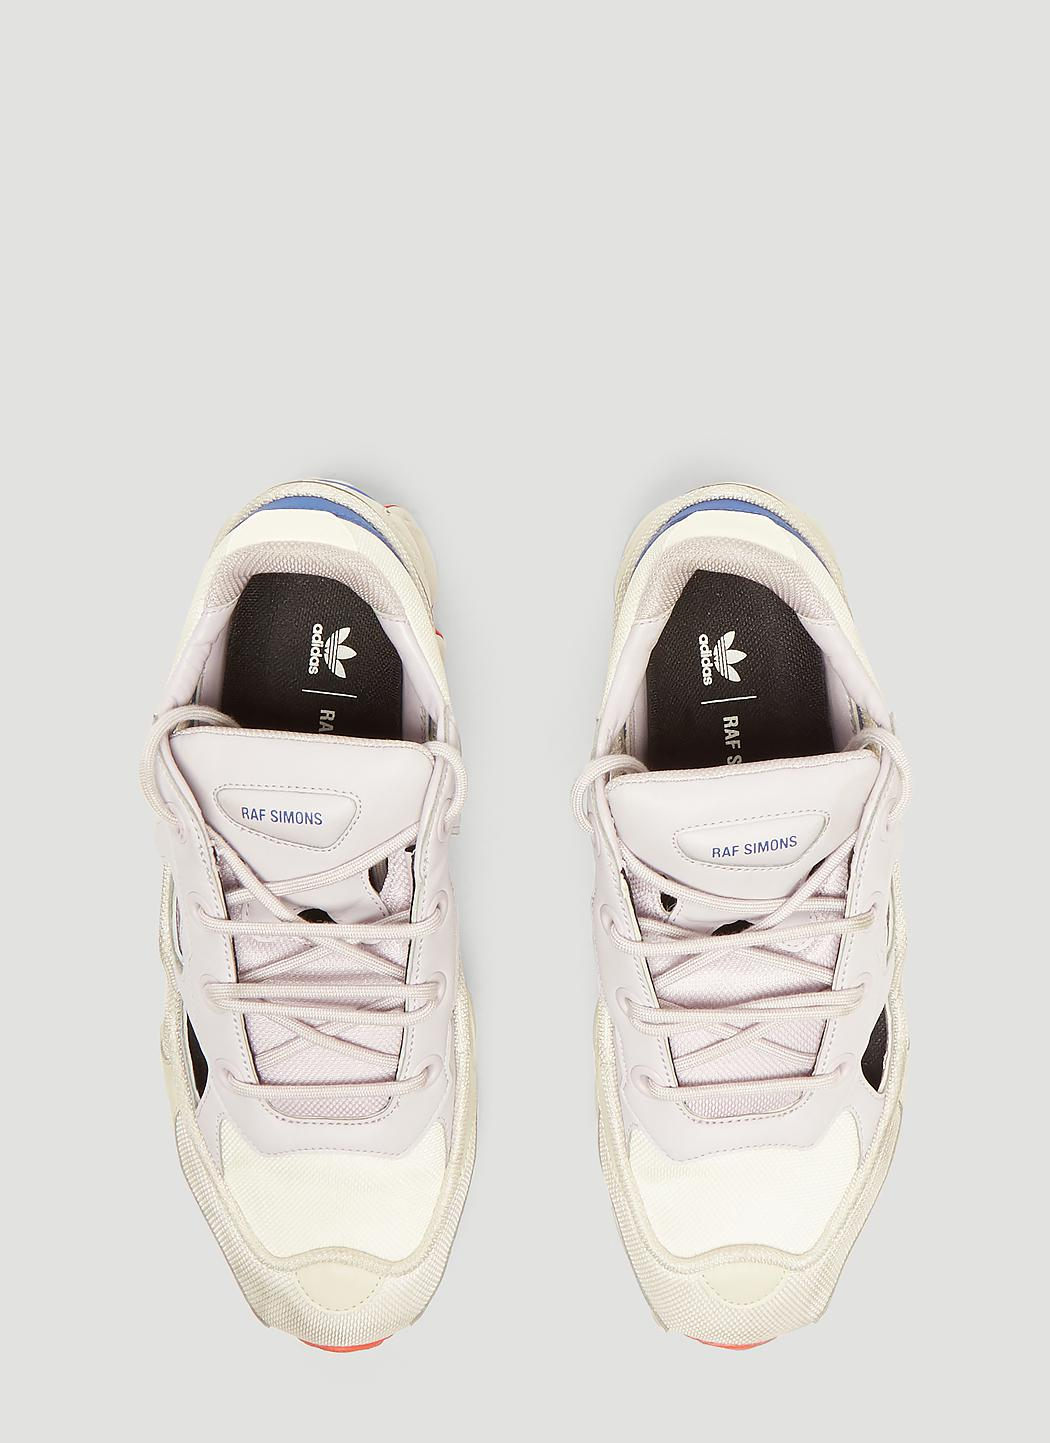 4c31f0a2360 Adidas By Raf Simons - White Replicant Ozweego Limited Edition Sneakers for  Men - Lyst. View fullscreen